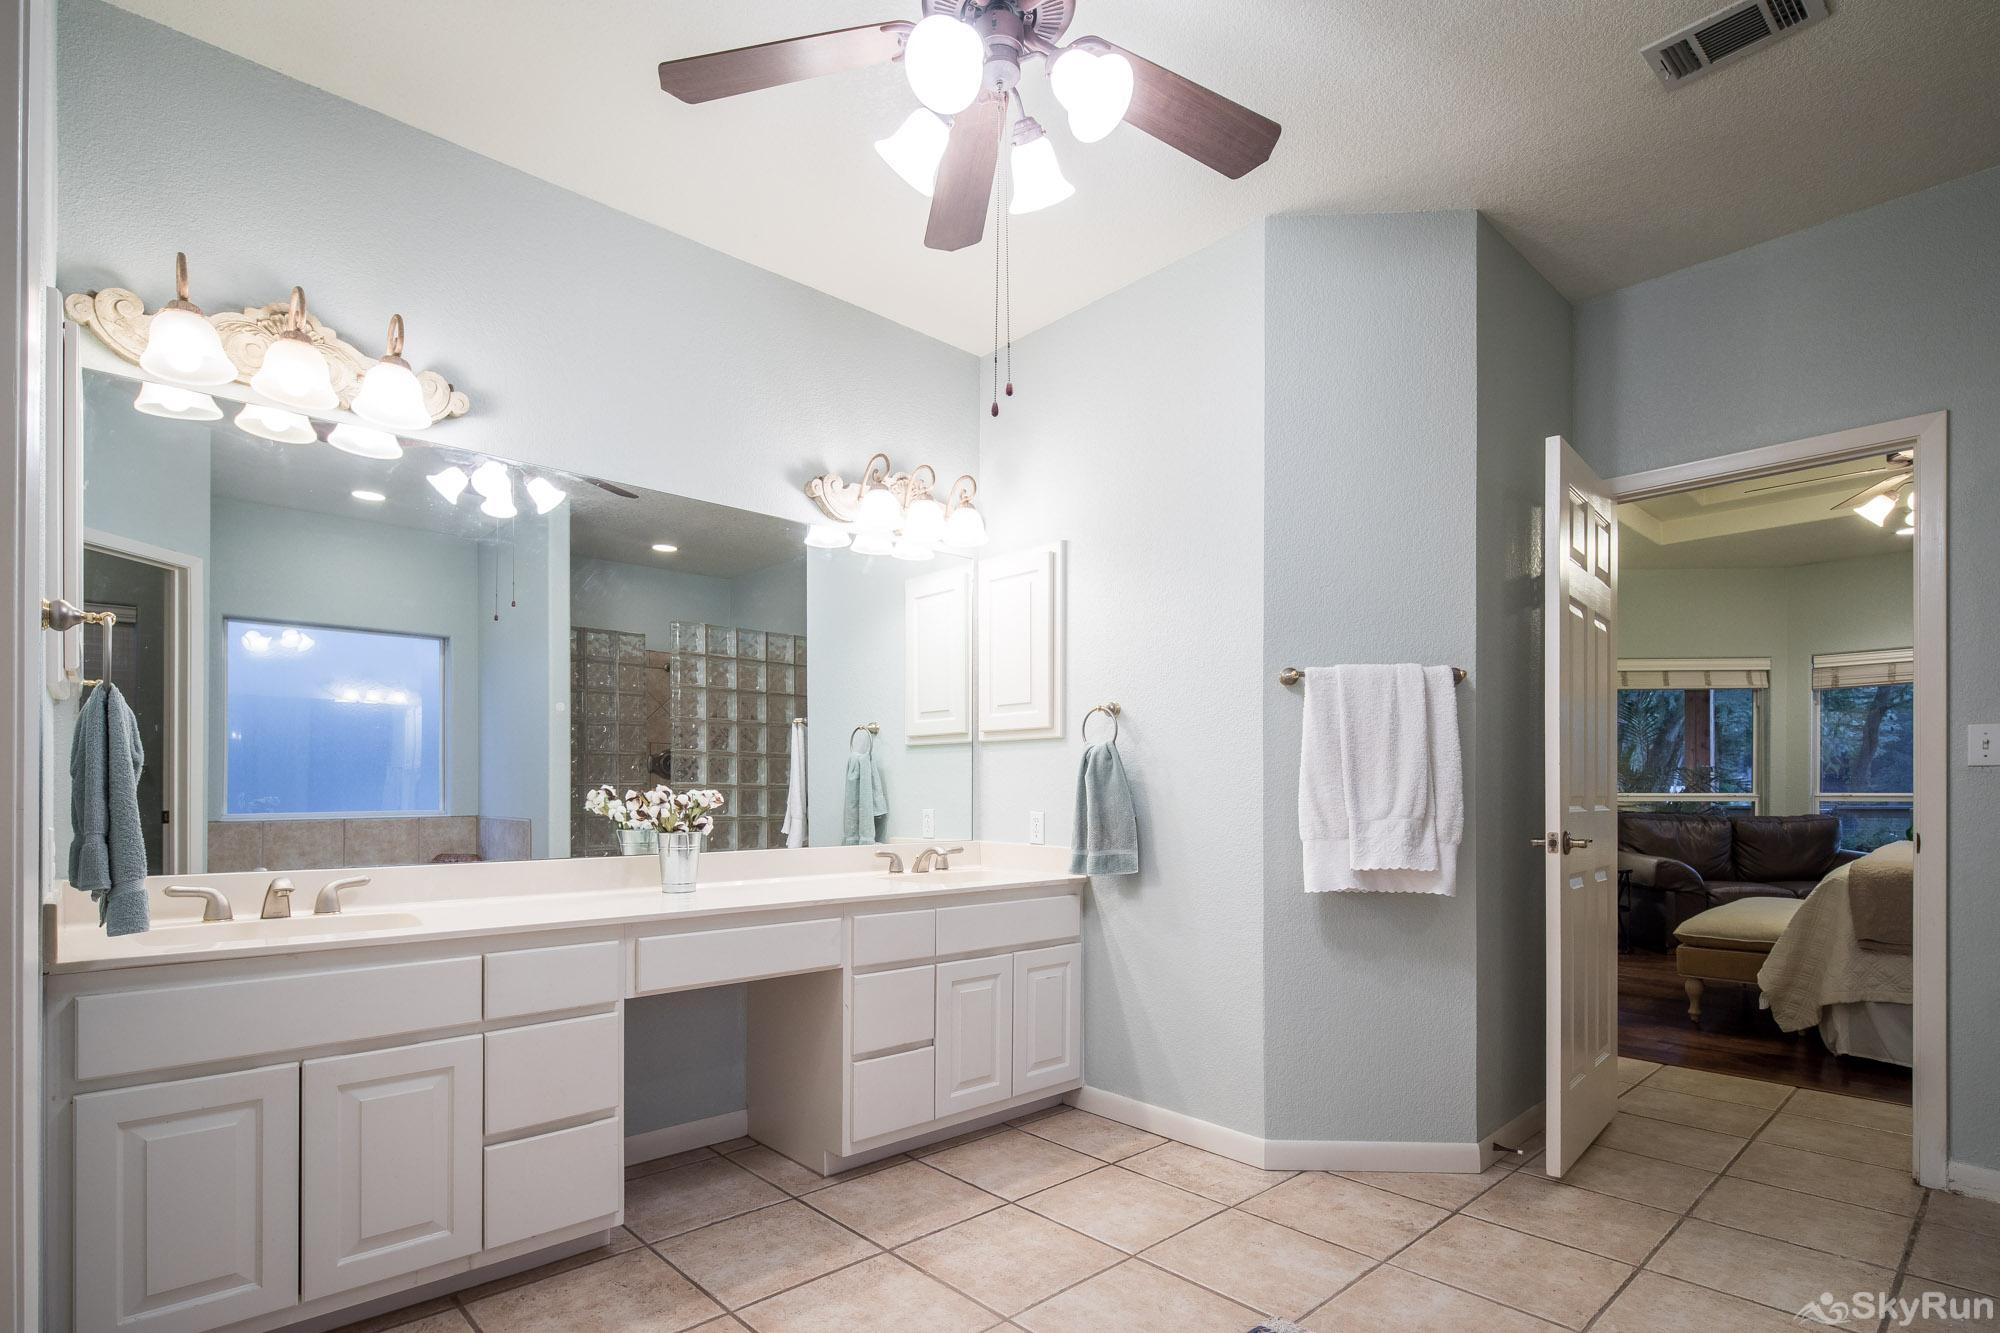 SERENITY SHORES Dual Vanity in Master Bathroom